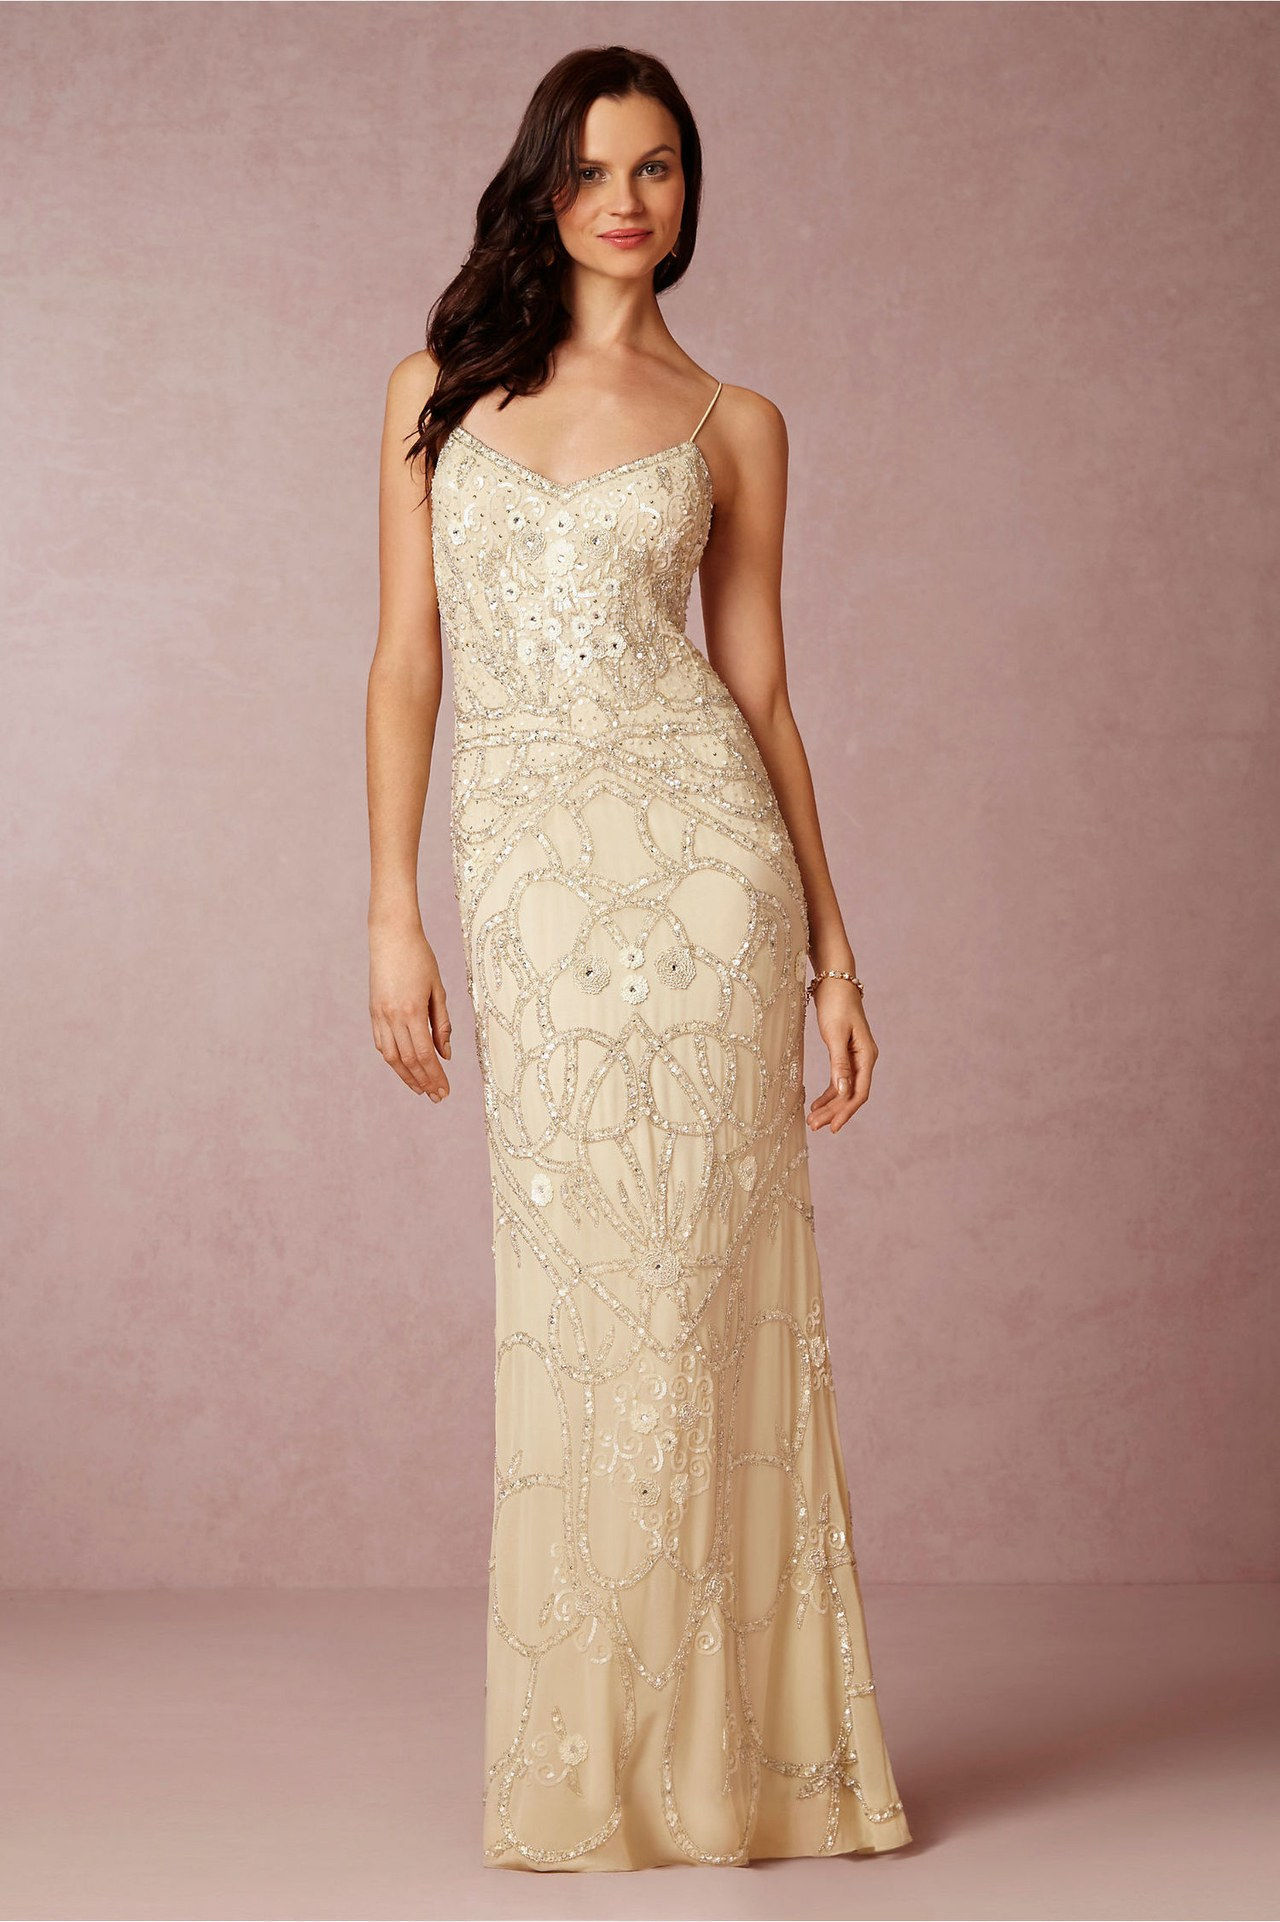 3a 2 in 1 wedding dresses wedding gowns mix and match wedding dresses bhldn 0430 courtesy